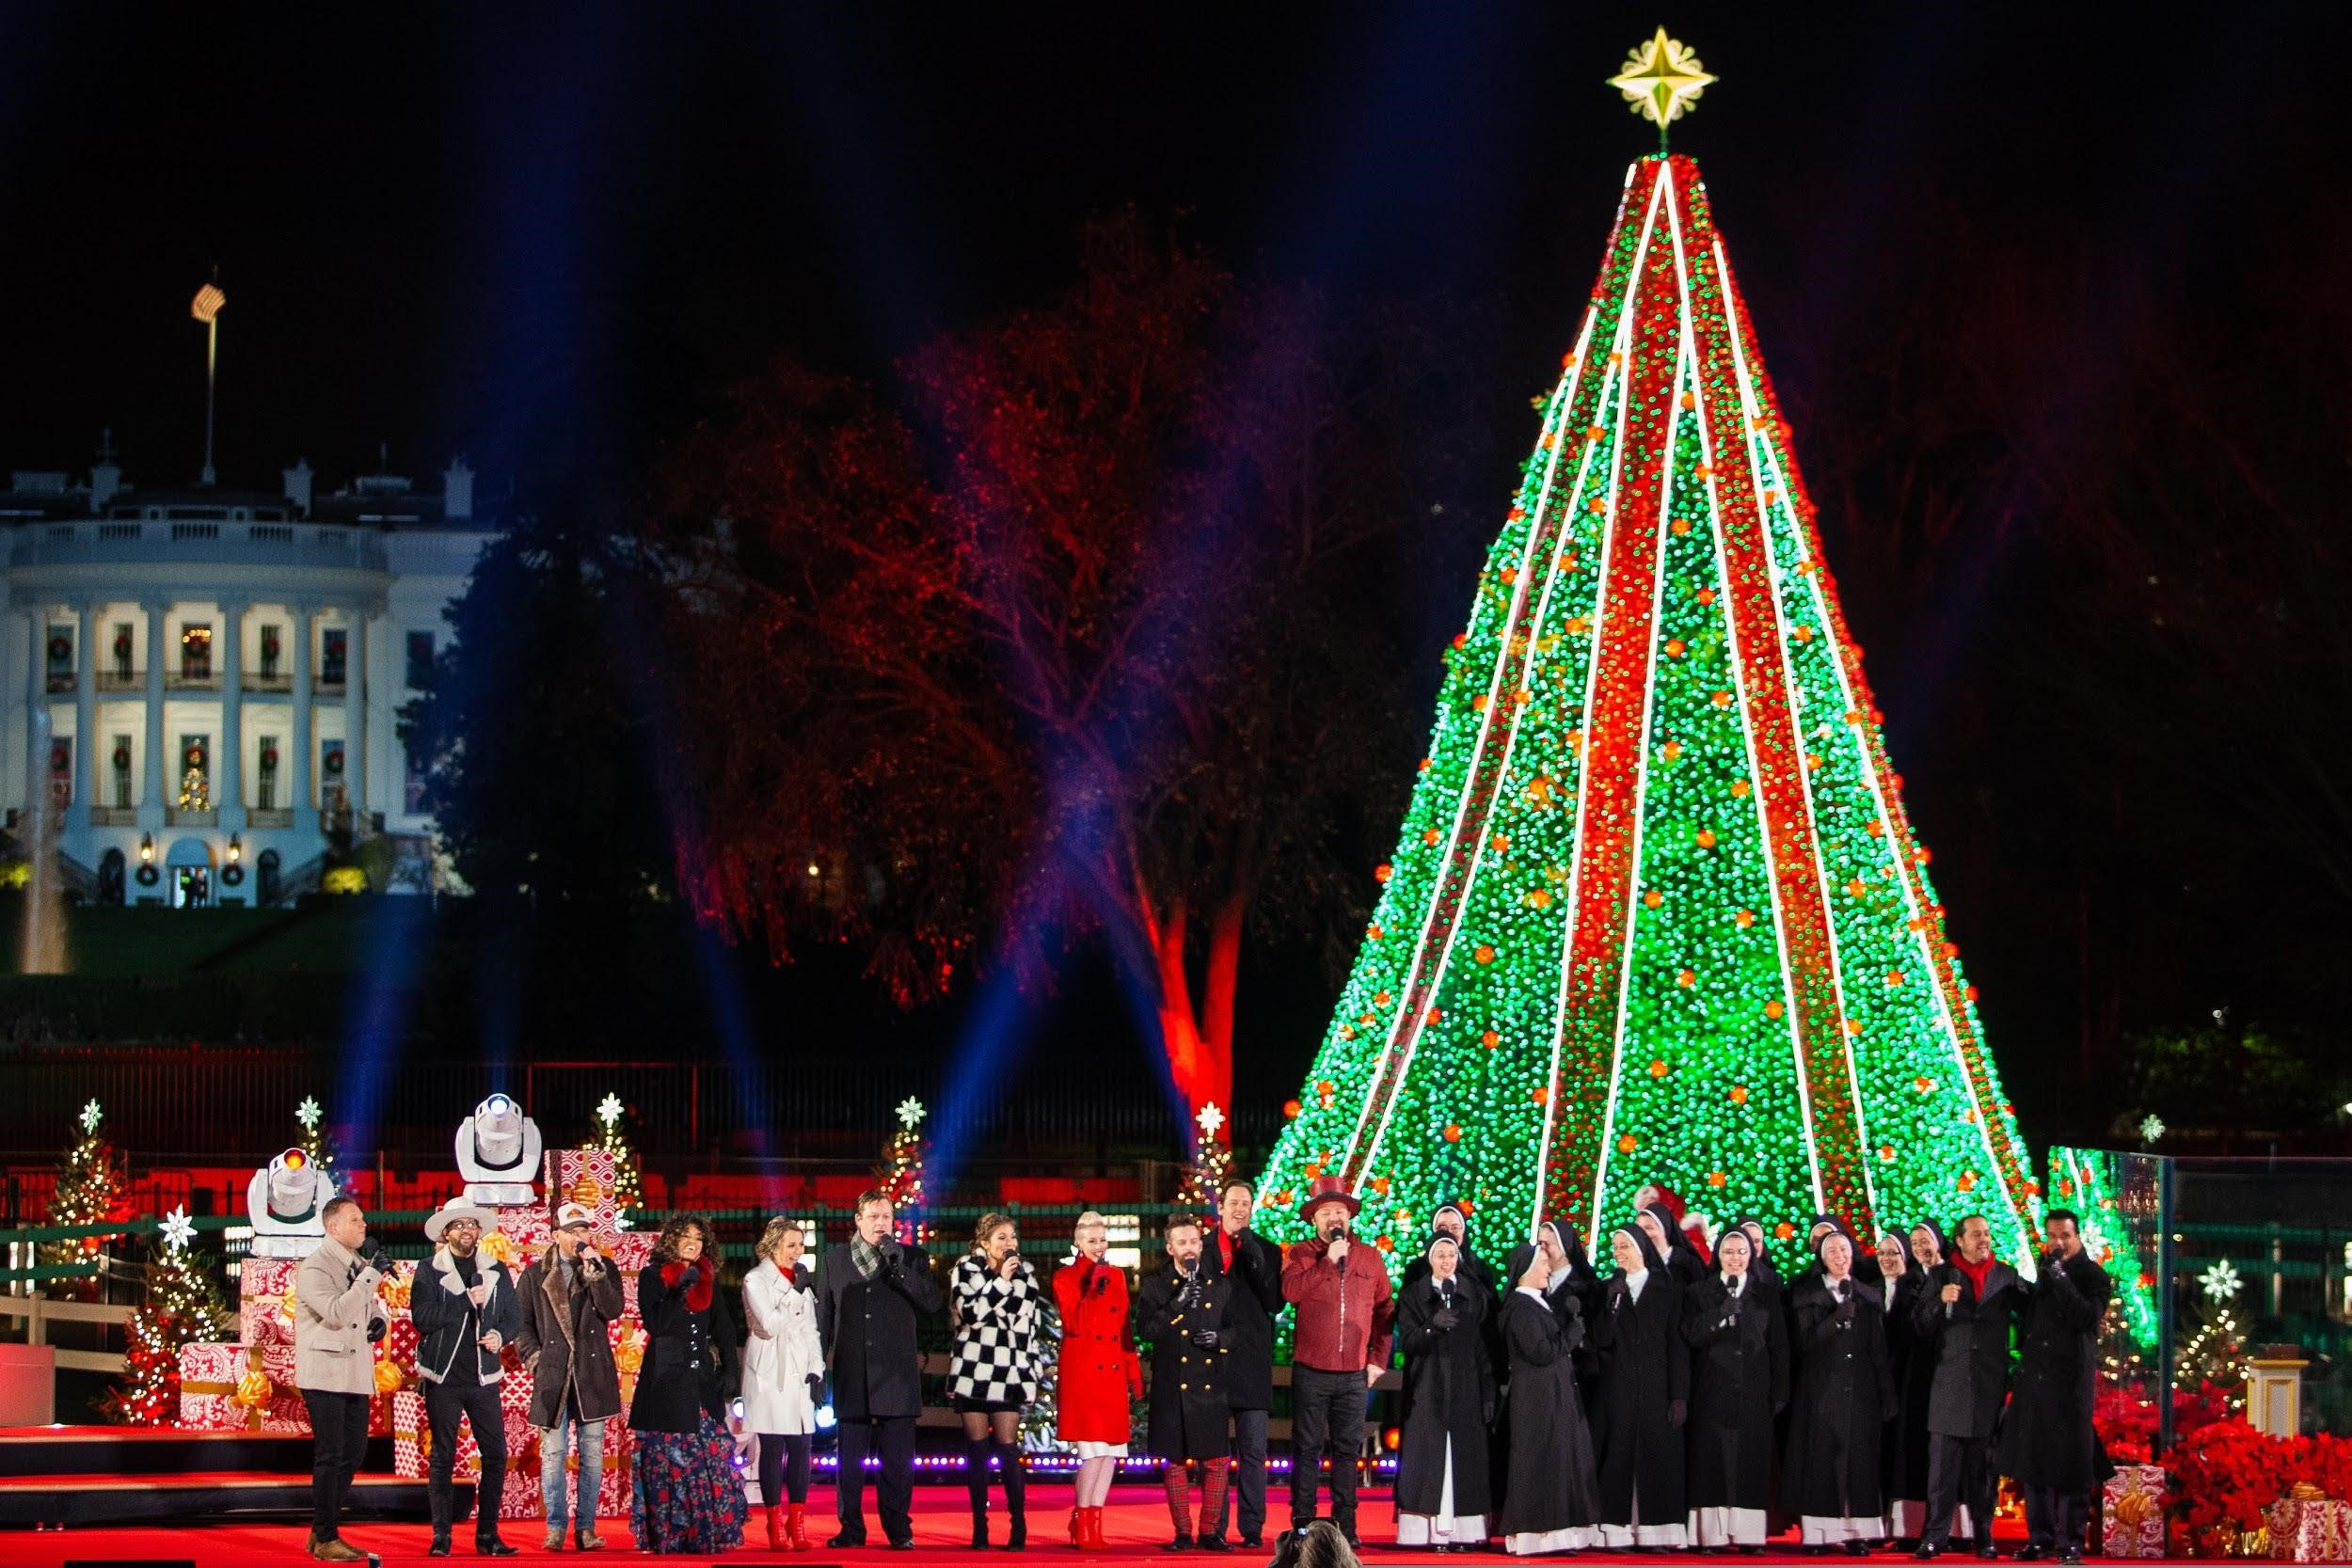 National Christmas Tree Lighting.Save The Date For The 2019 National Christmas Tree Lighting